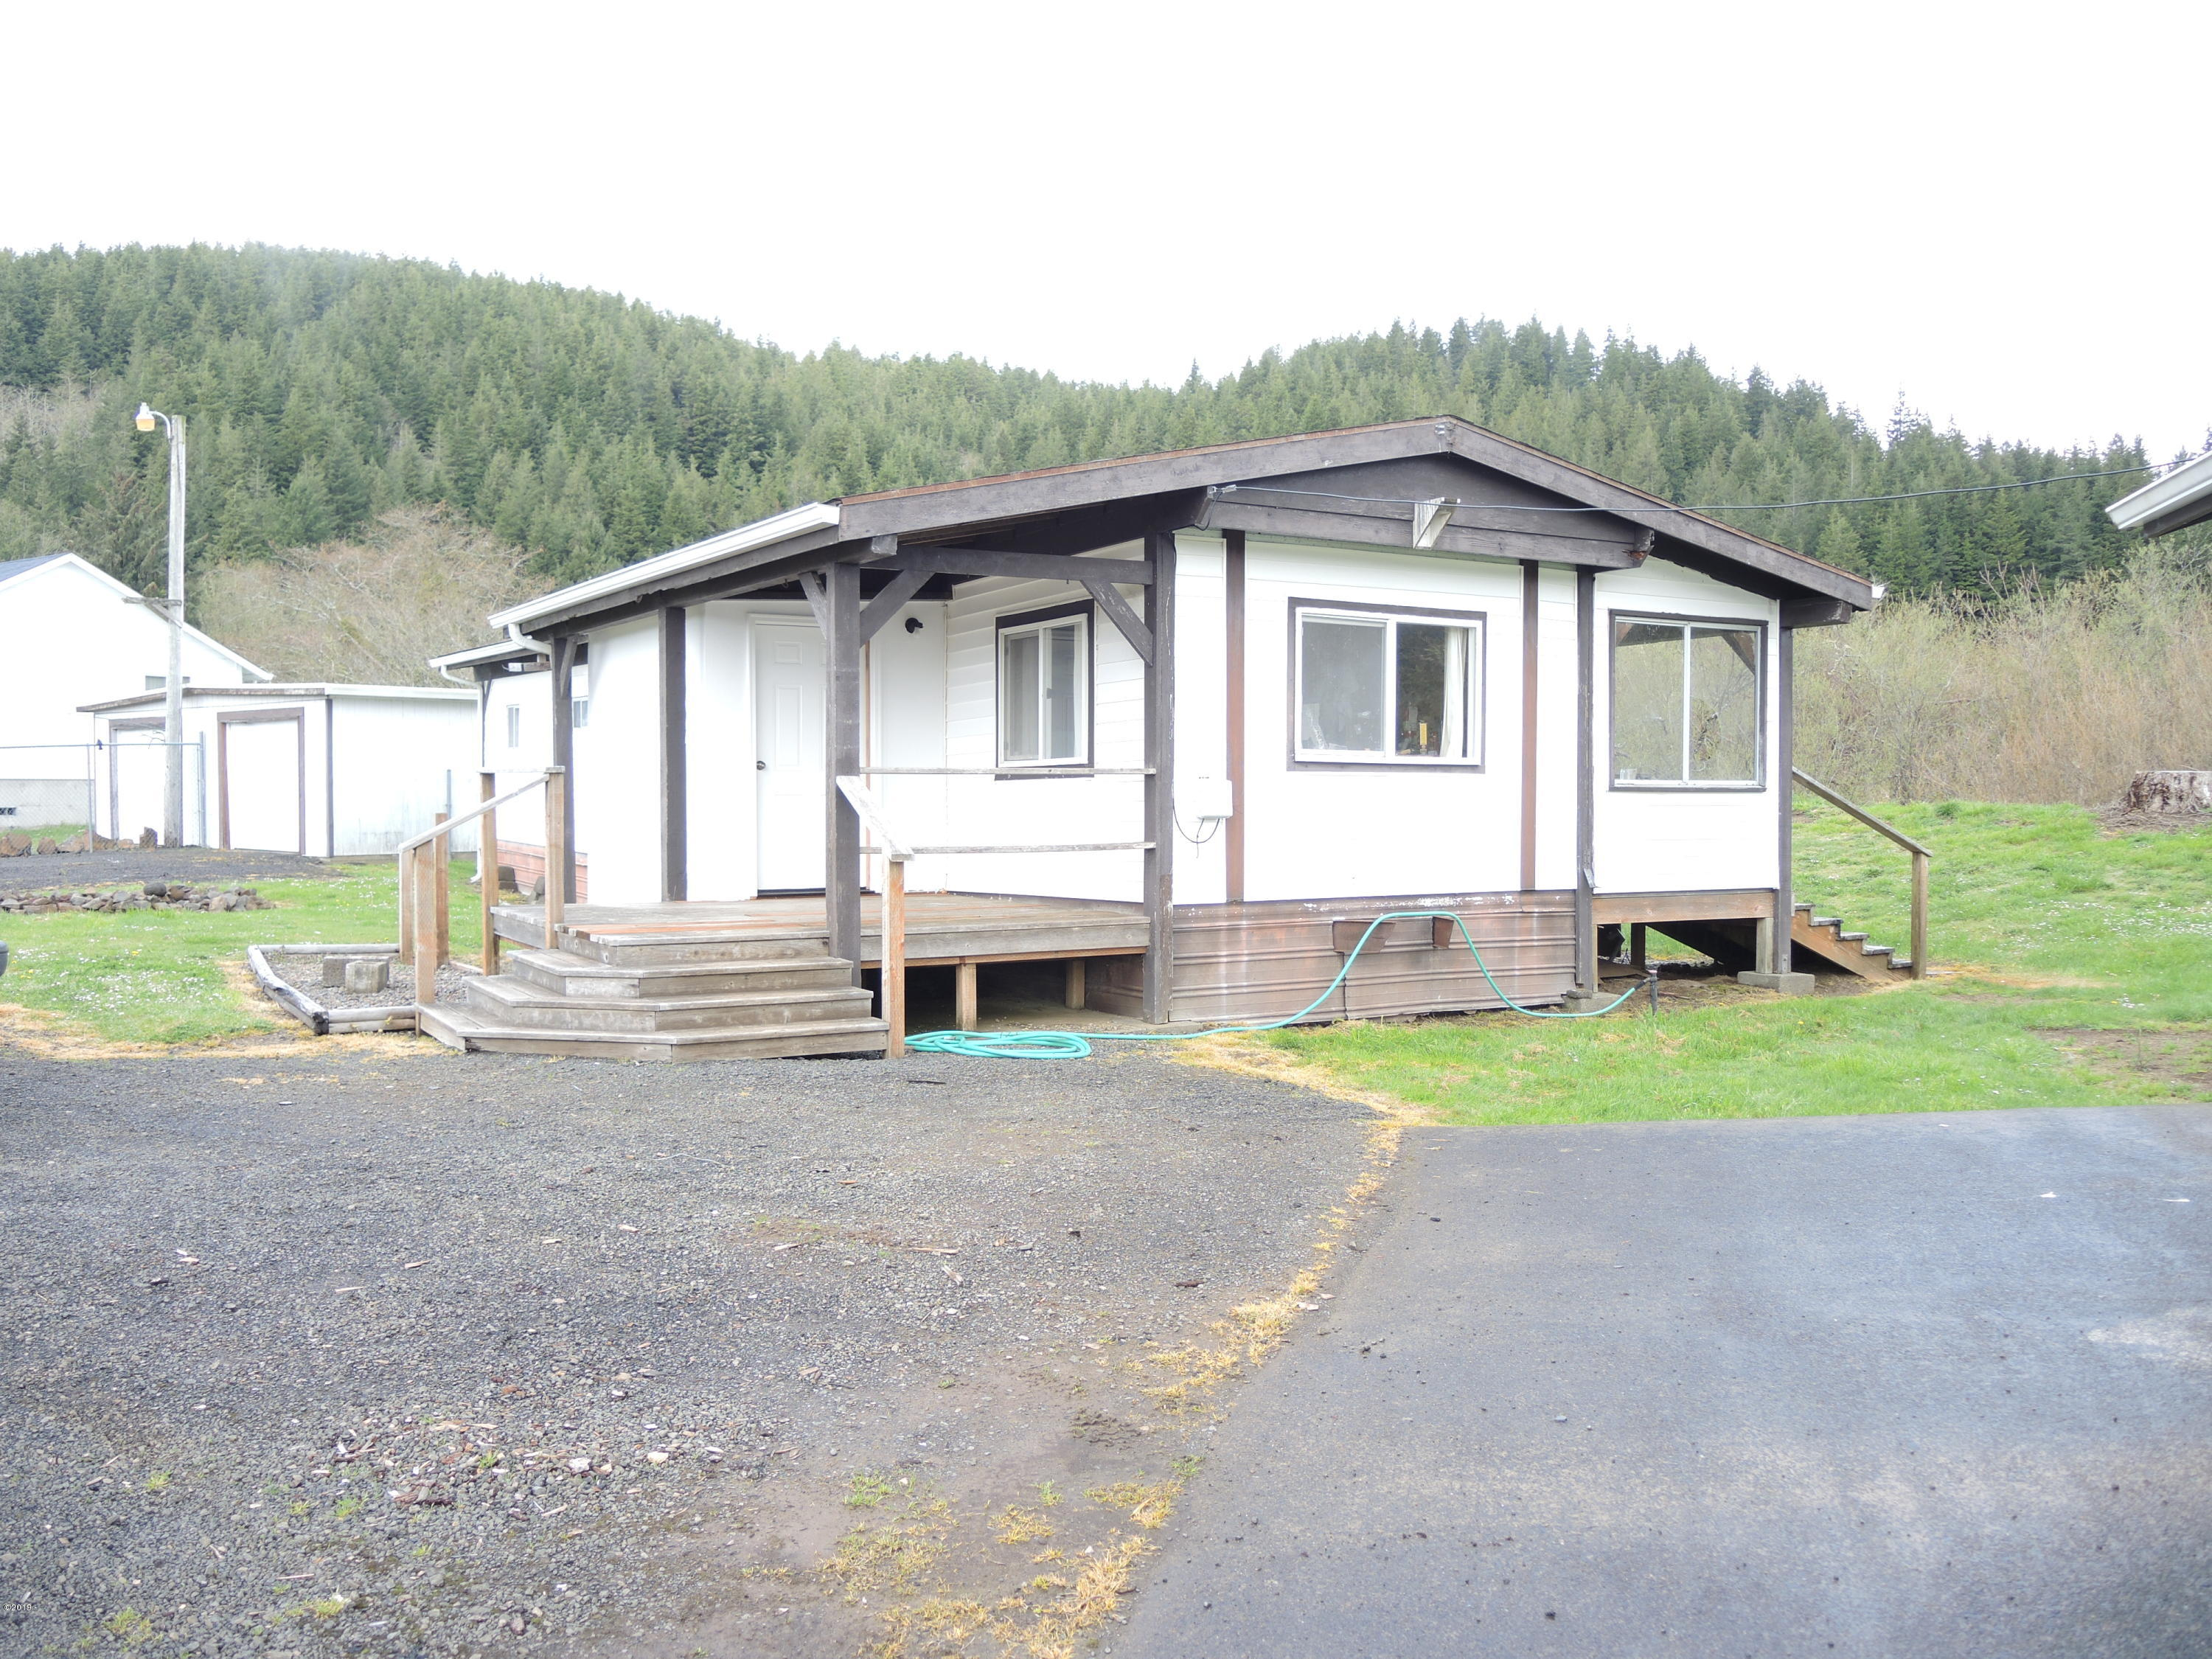 123 S Gorton Rd, Lincoln City, OR 97367 - street side